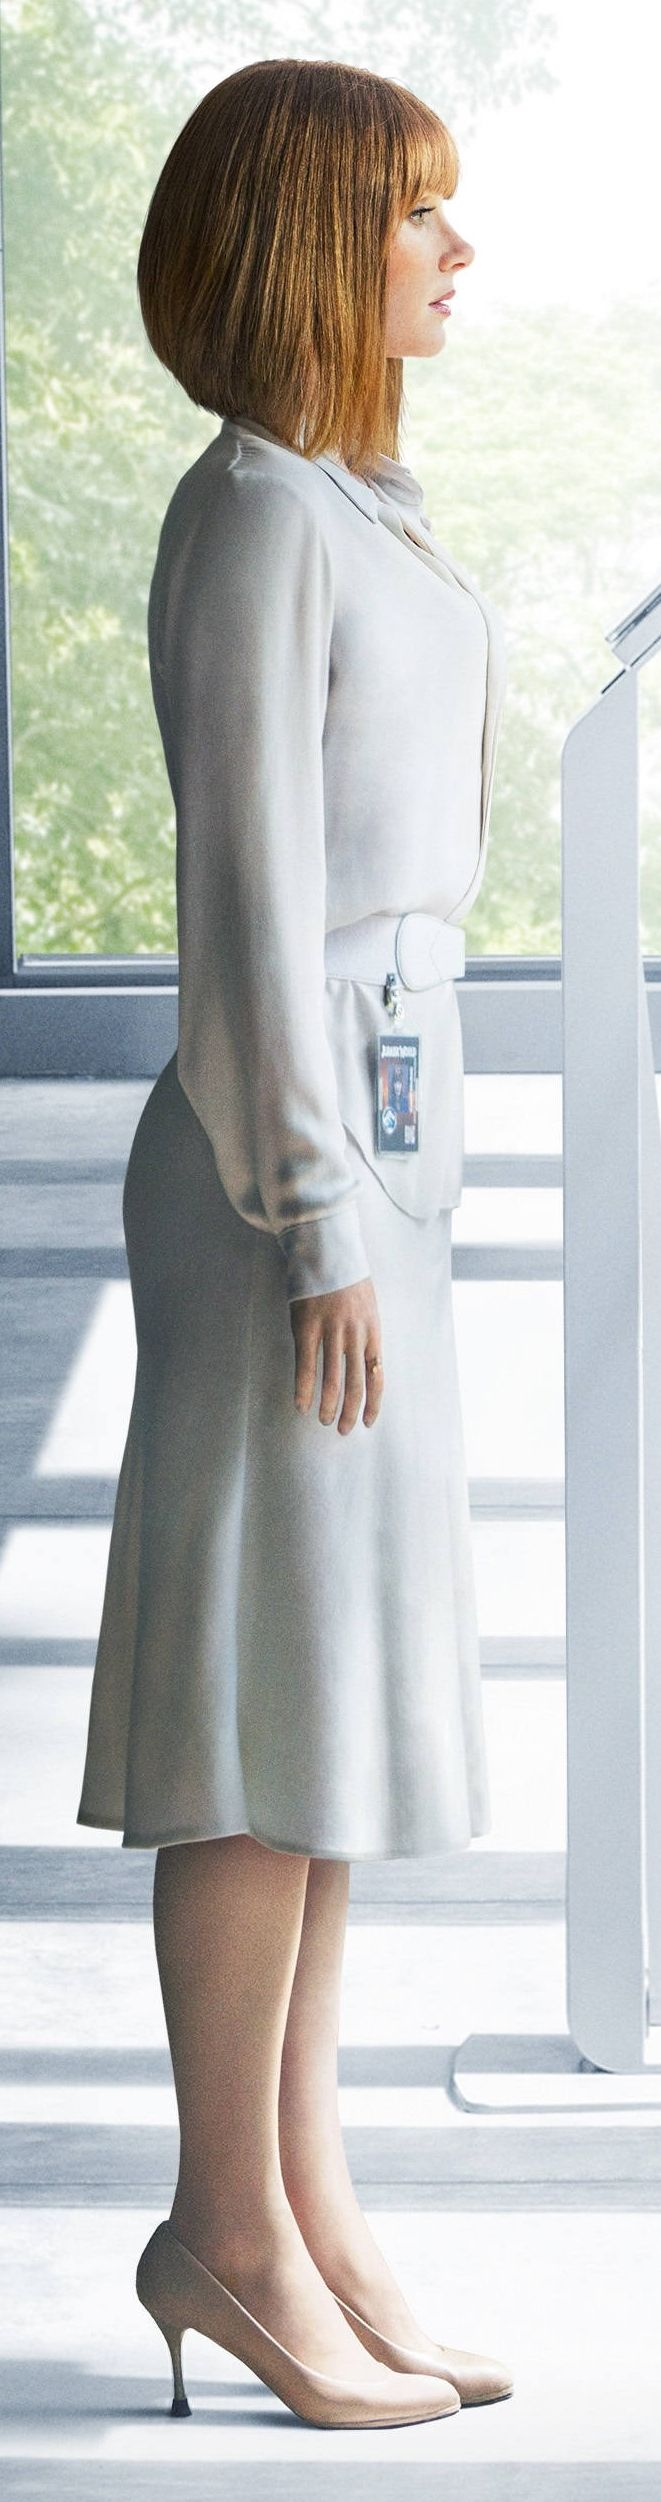 Claire Dearing (Bryce Dallas Howard) standing in the observation room at the Indominus Rex's cage.